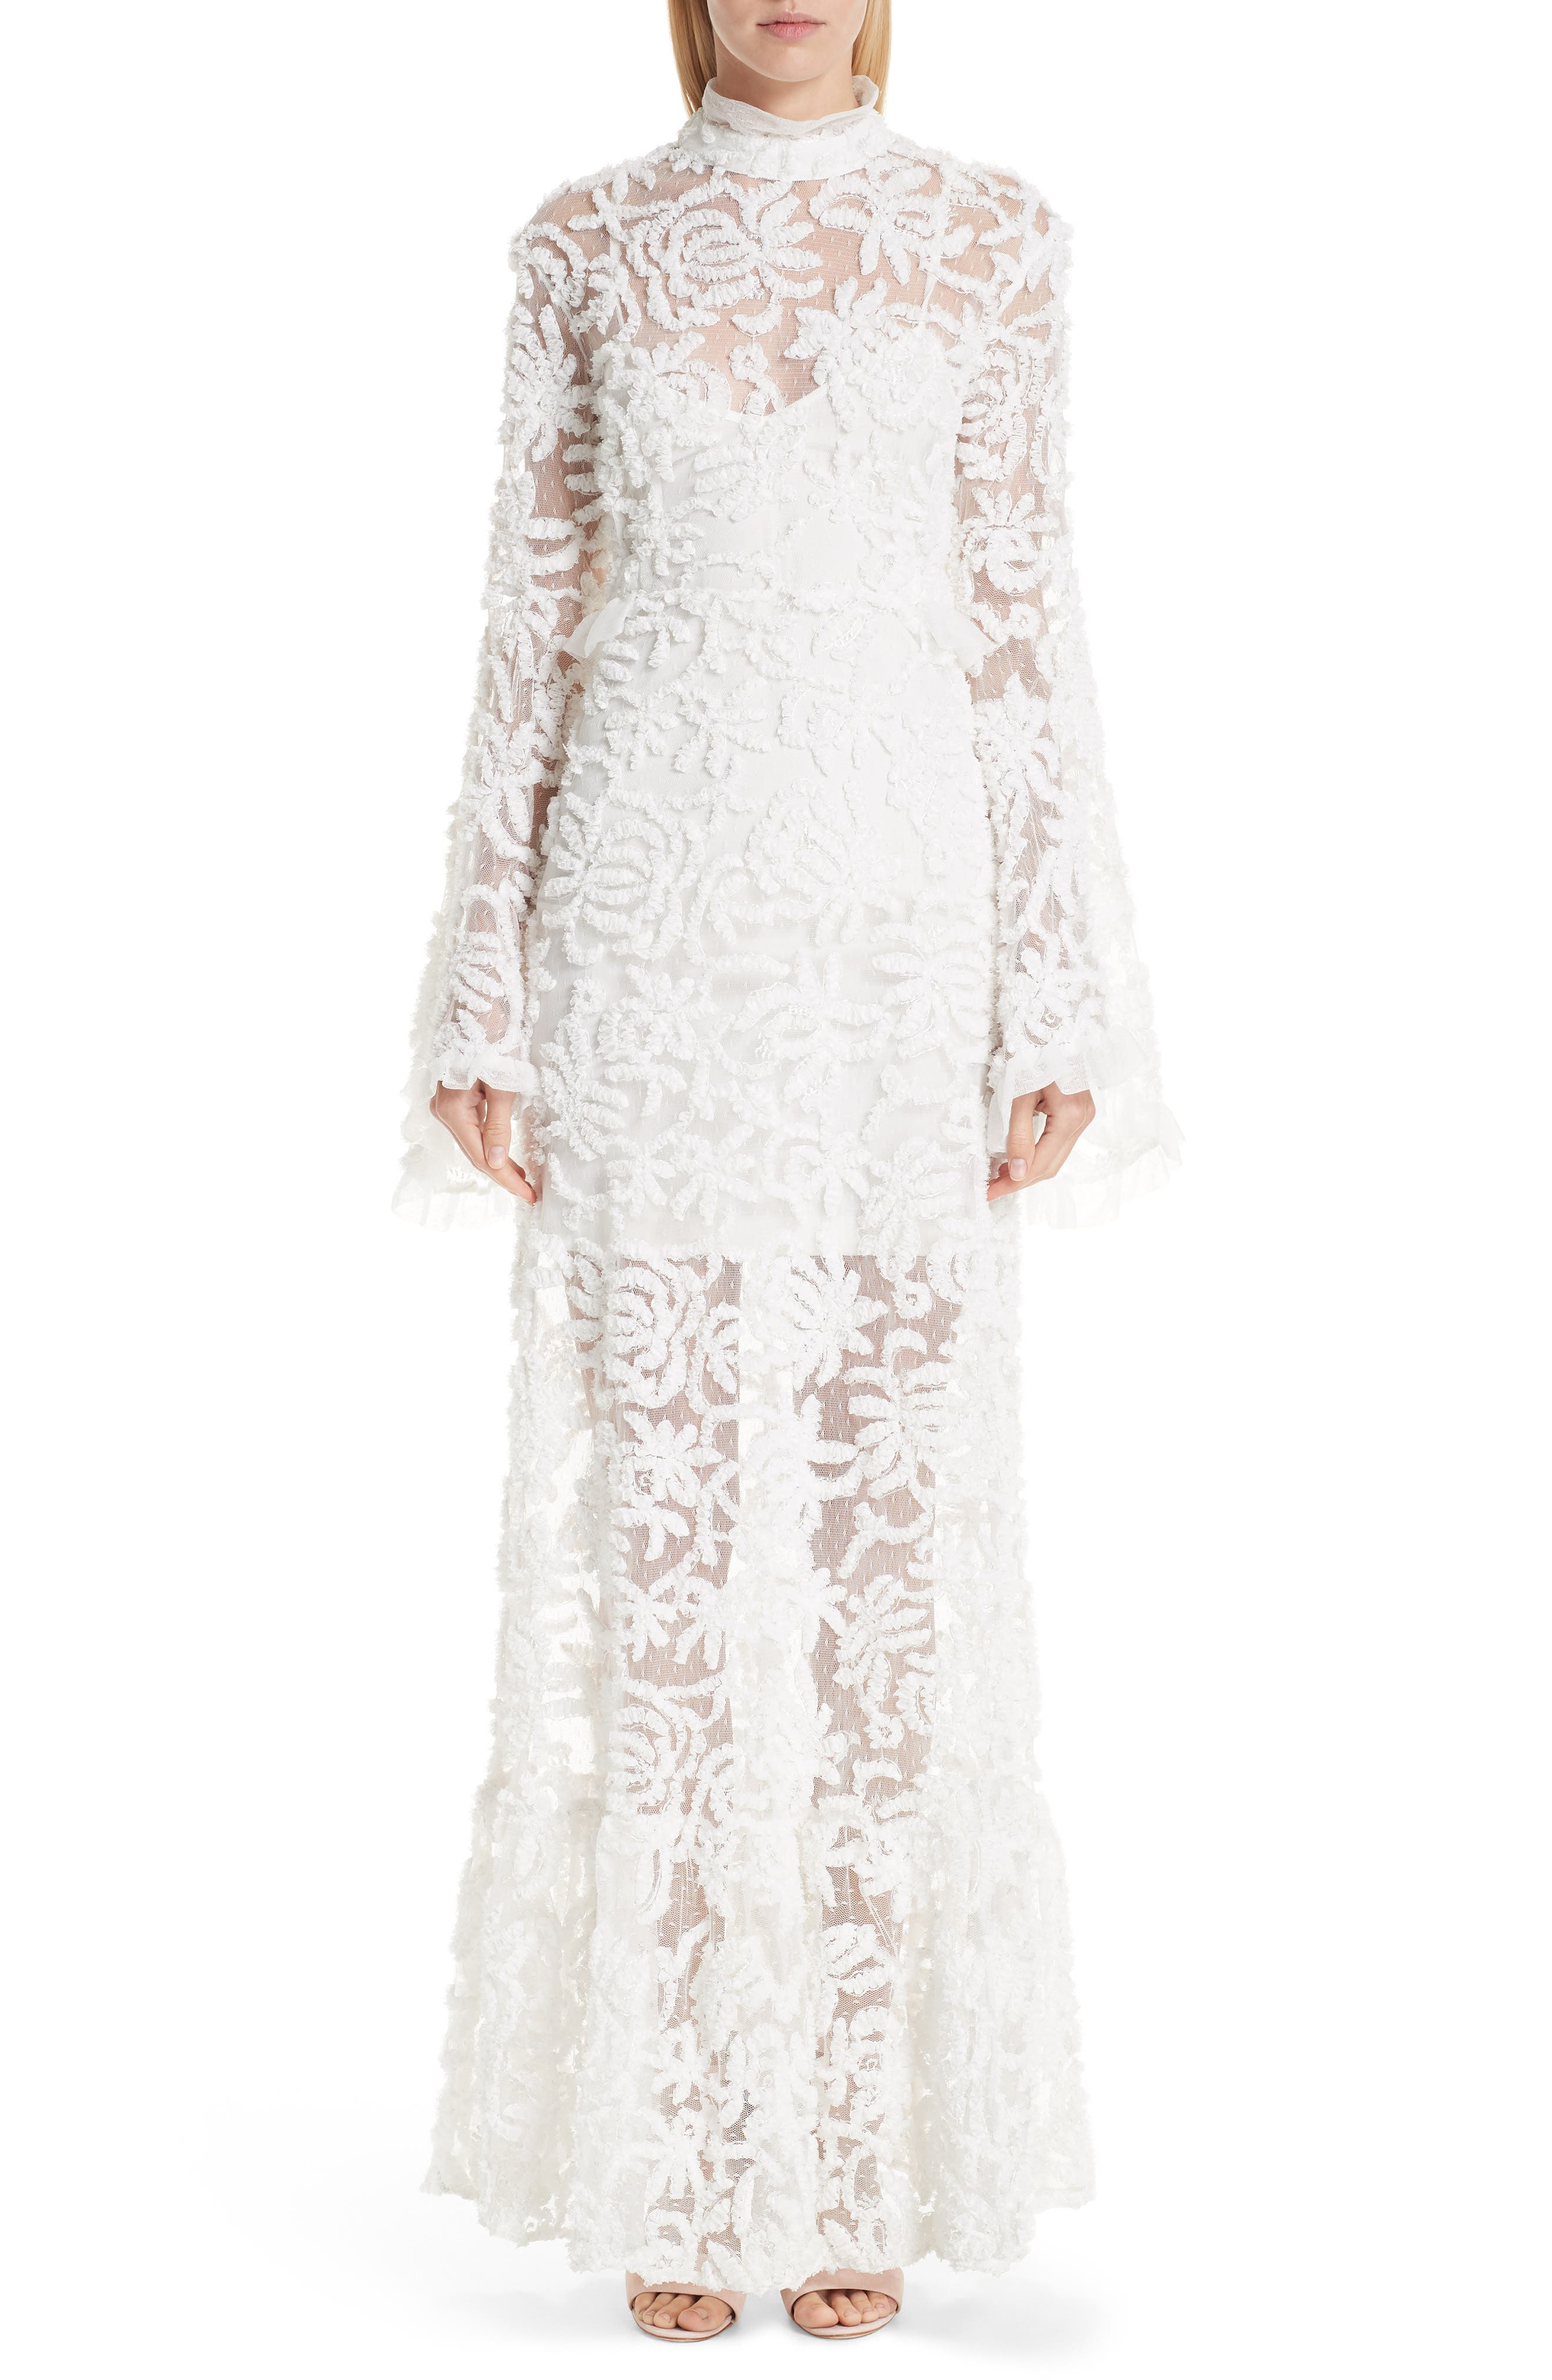 Vintage Inspired Wedding Dress | Vintage Style Wedding Dresses Womens Malene Oddershede Bach Lace Bell Sleeve Evening Dress $1,585.00 AT vintagedancer.com